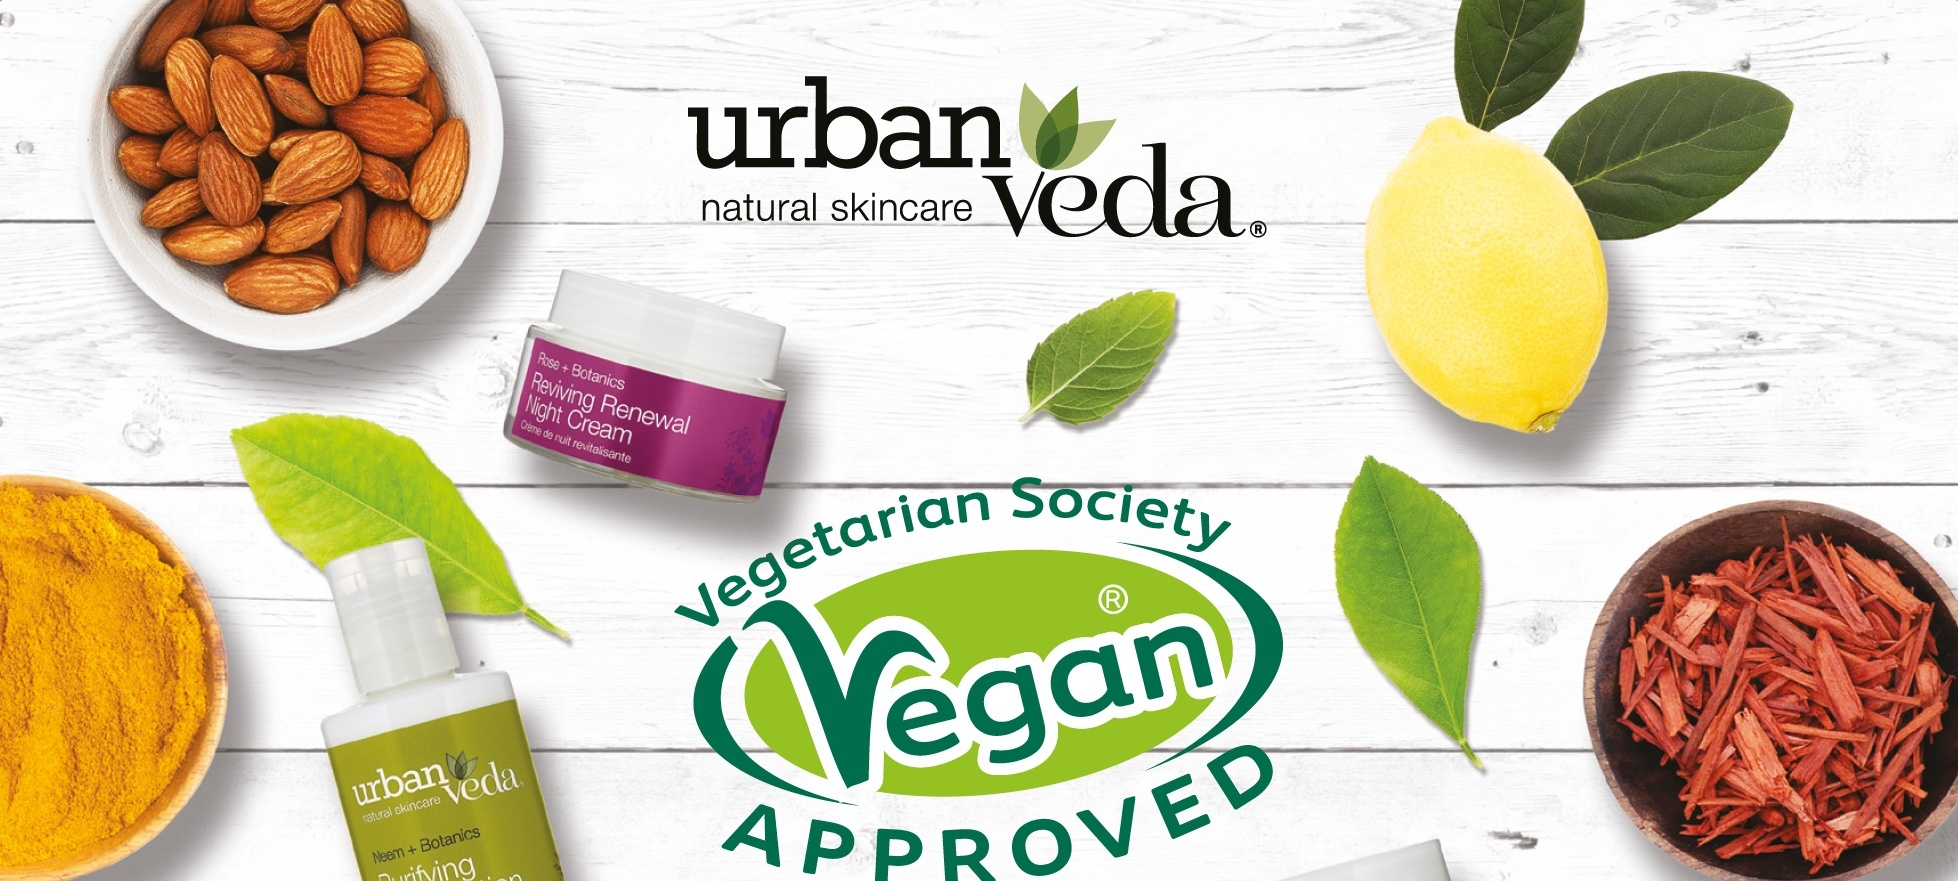 Urban Veda Vegan Society Approved